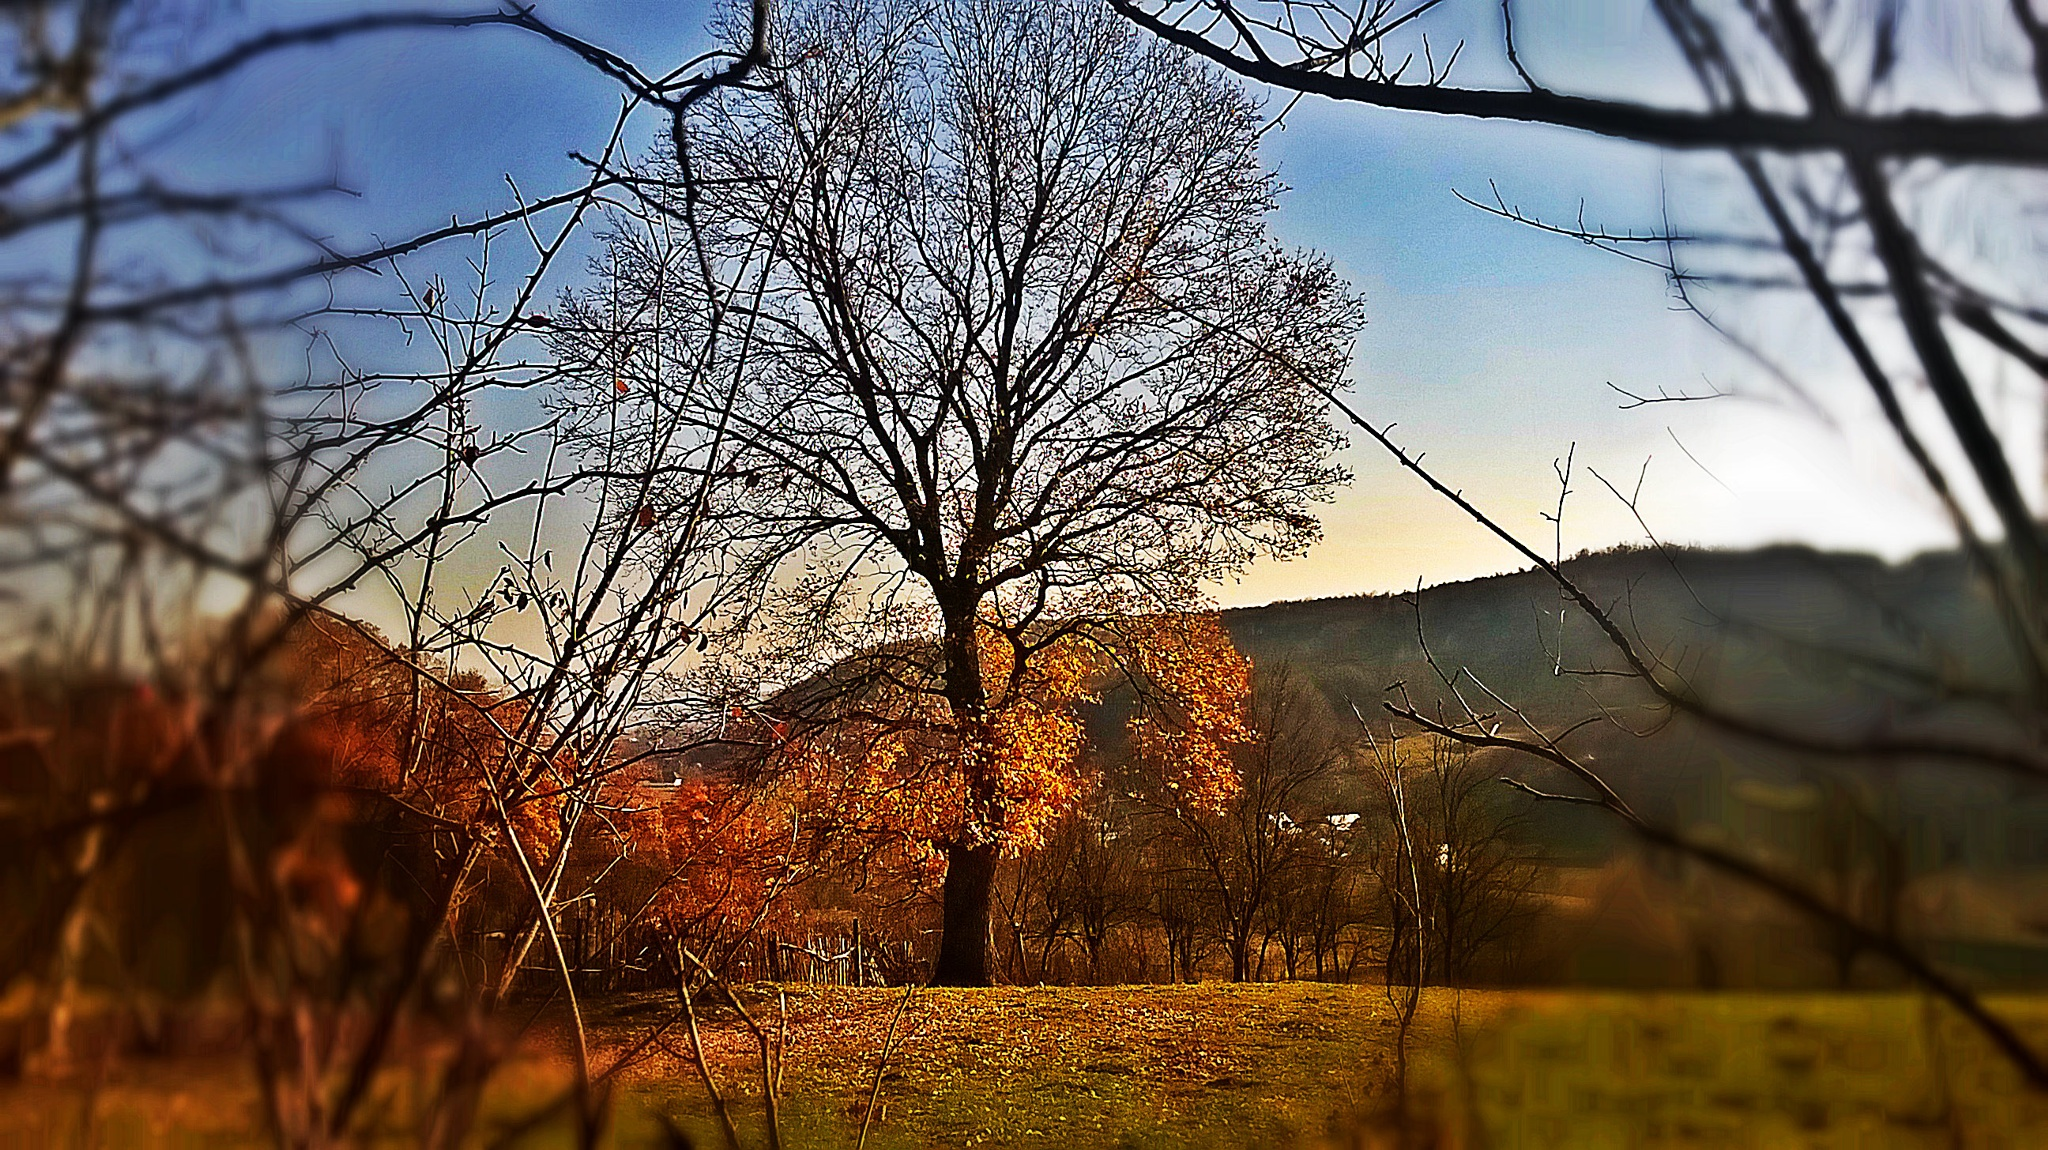 Tree in autumn by Autumn Leaves